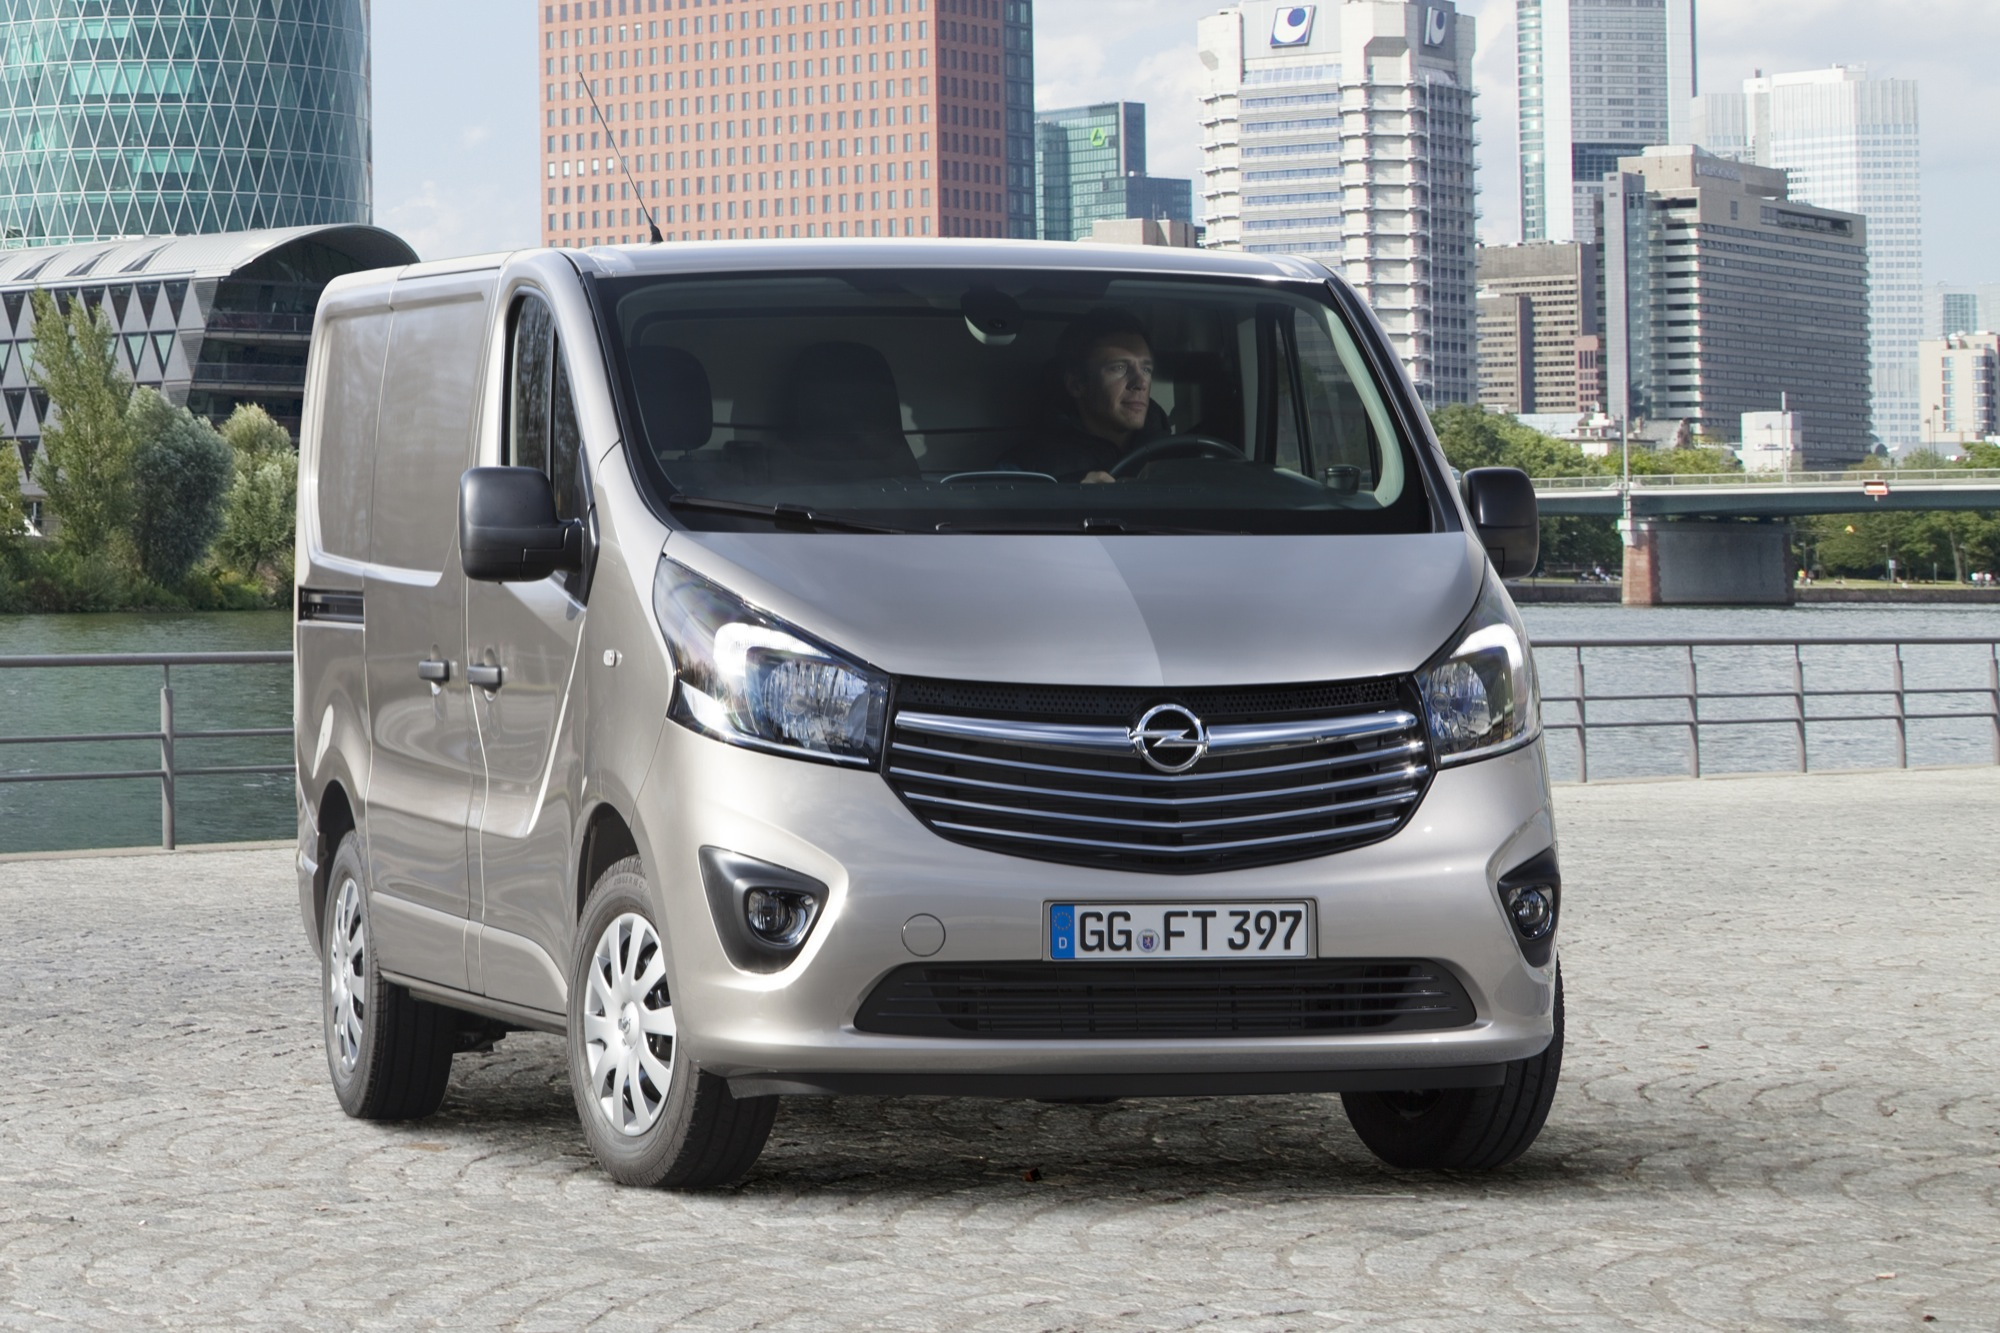 2015 Opel Vivaro Commercial Van Revealed | GM Authority